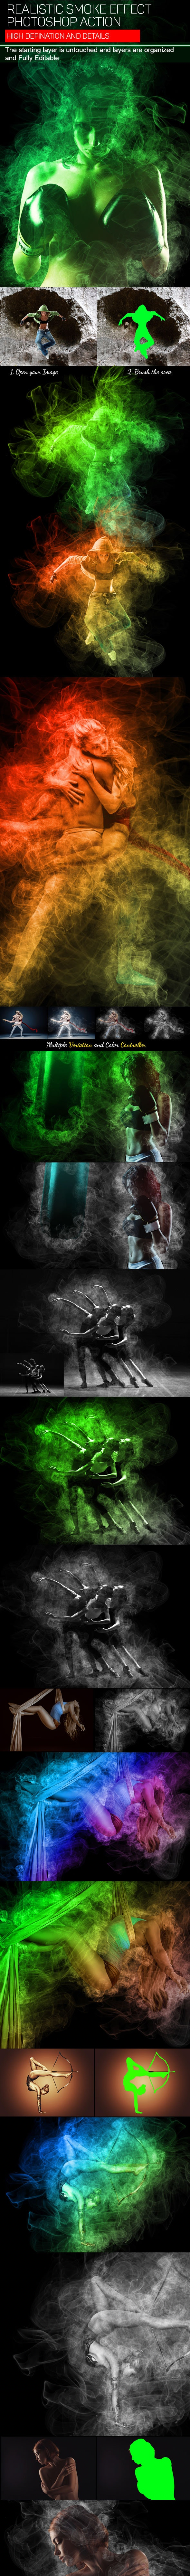 Realistic Smoke Photoshop Action - Photo Effects Actions